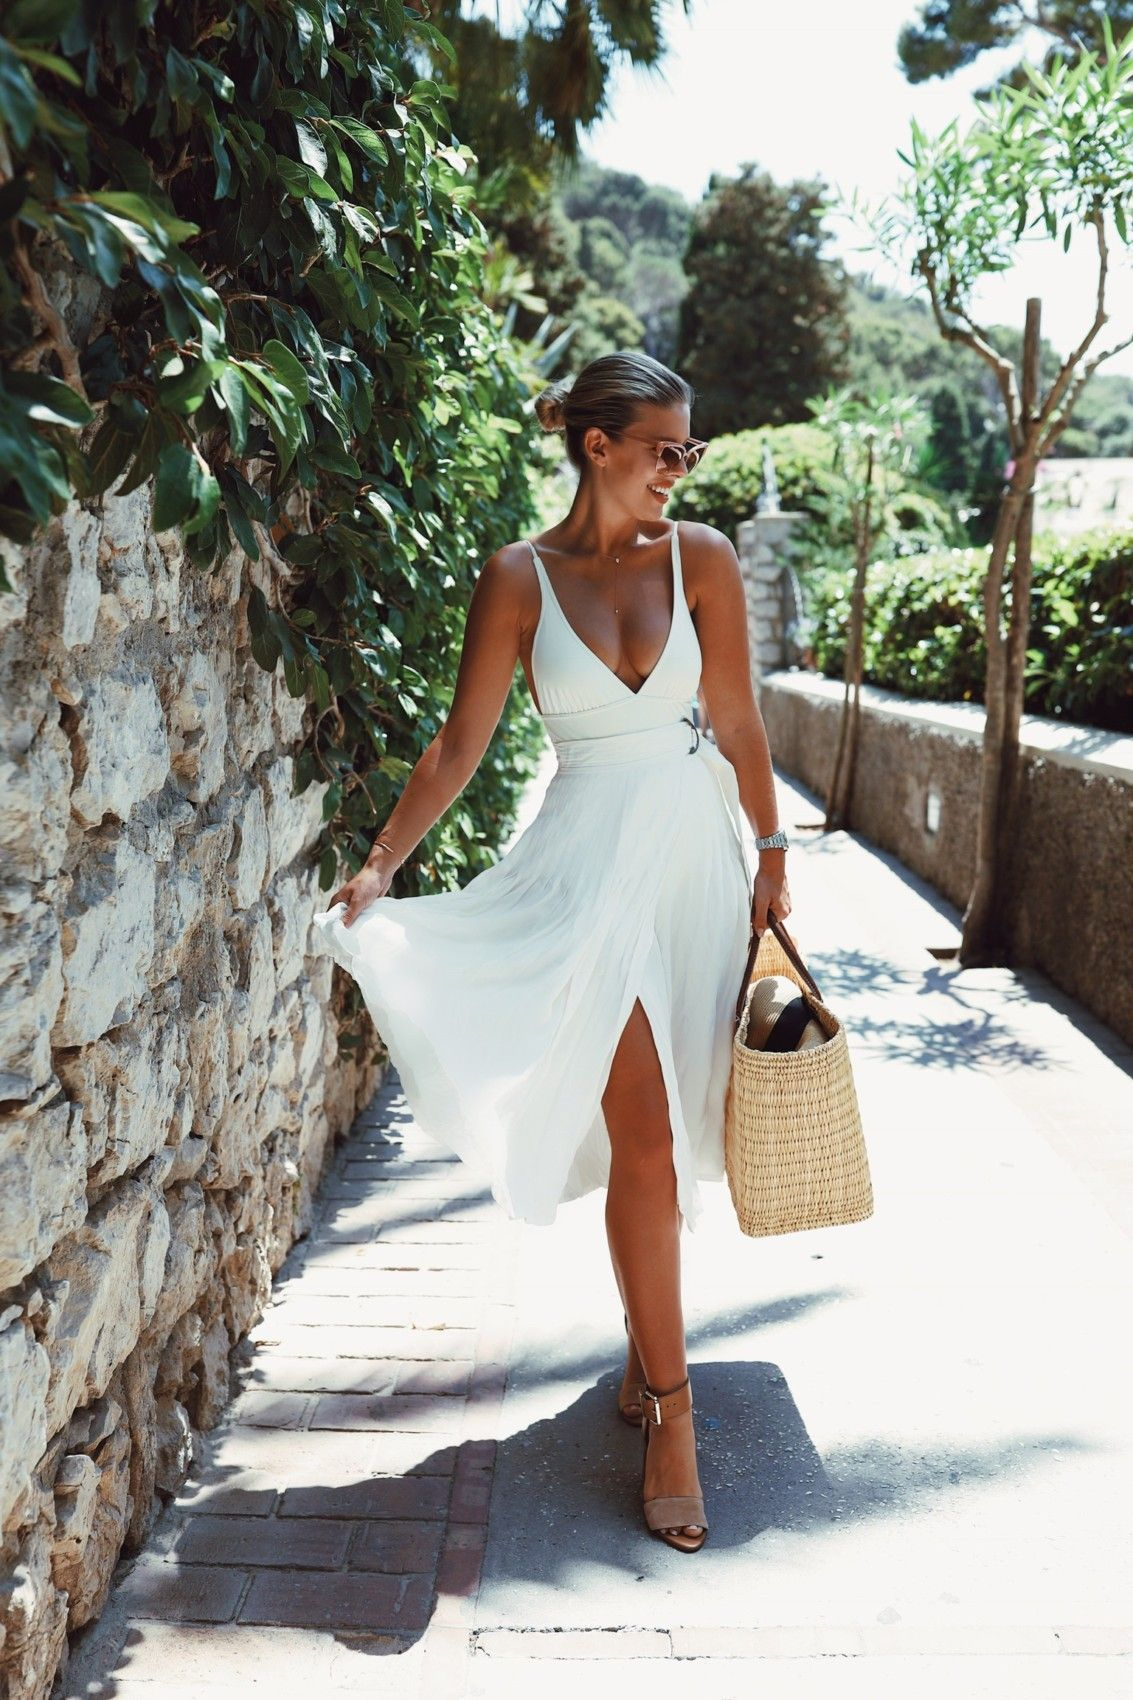 Ootd The Chic Way To Wrap Up Summer Boho Prom Dress Dresses Summer Dresses [ 1700 x 1133 Pixel ]